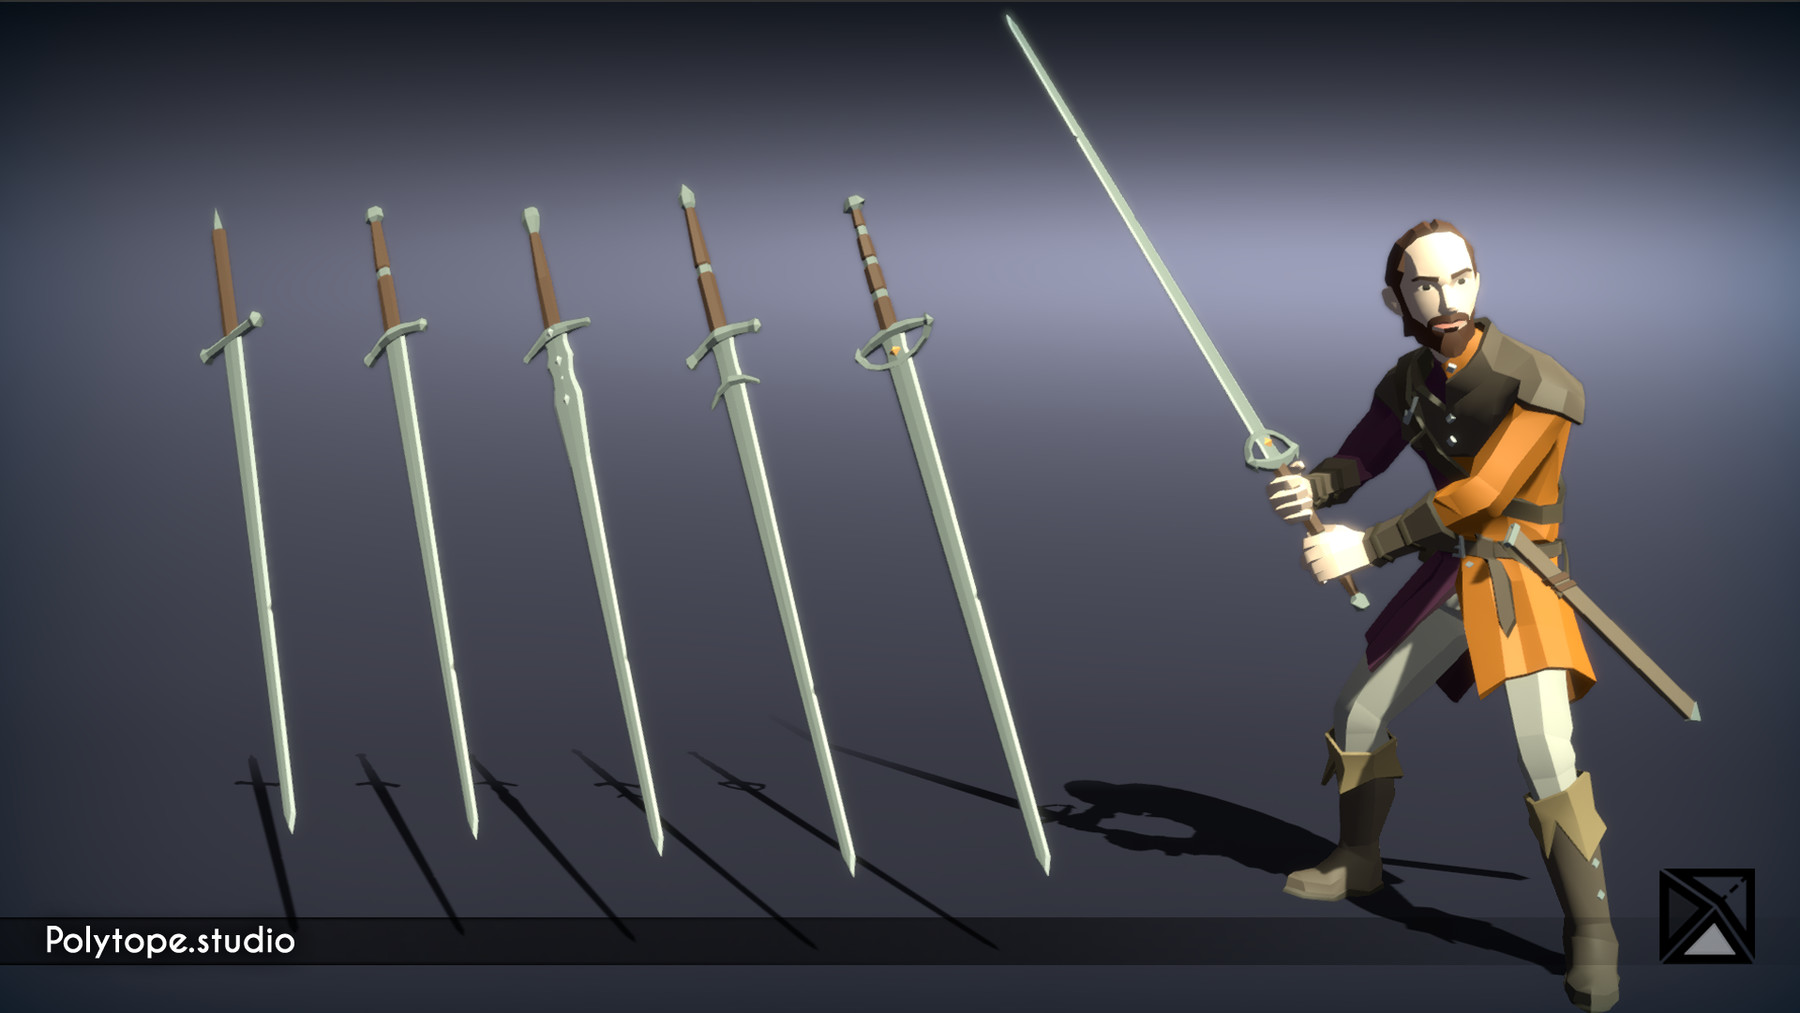 Pt medieval lowpoly weapons long sword